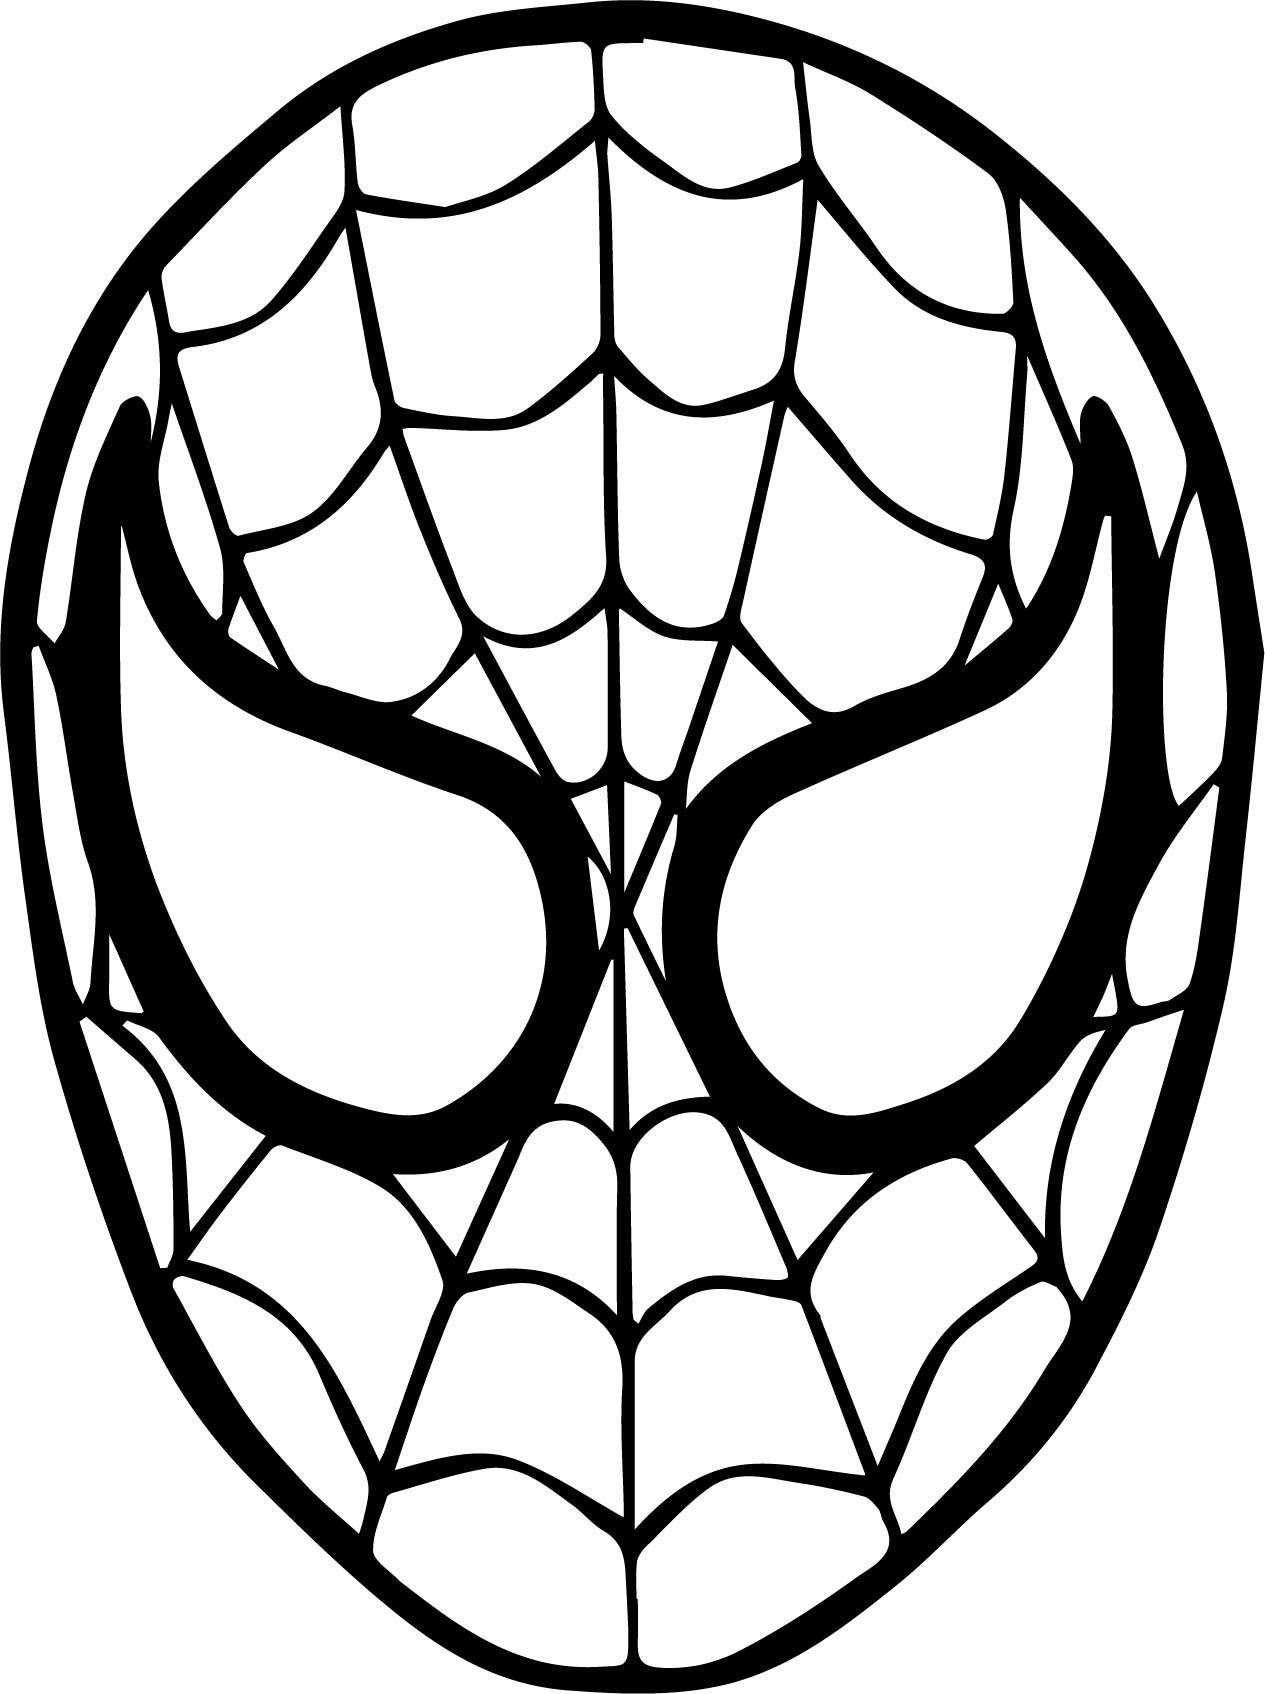 Spiderman Mask Coloring Page Captain America Mask Coloring